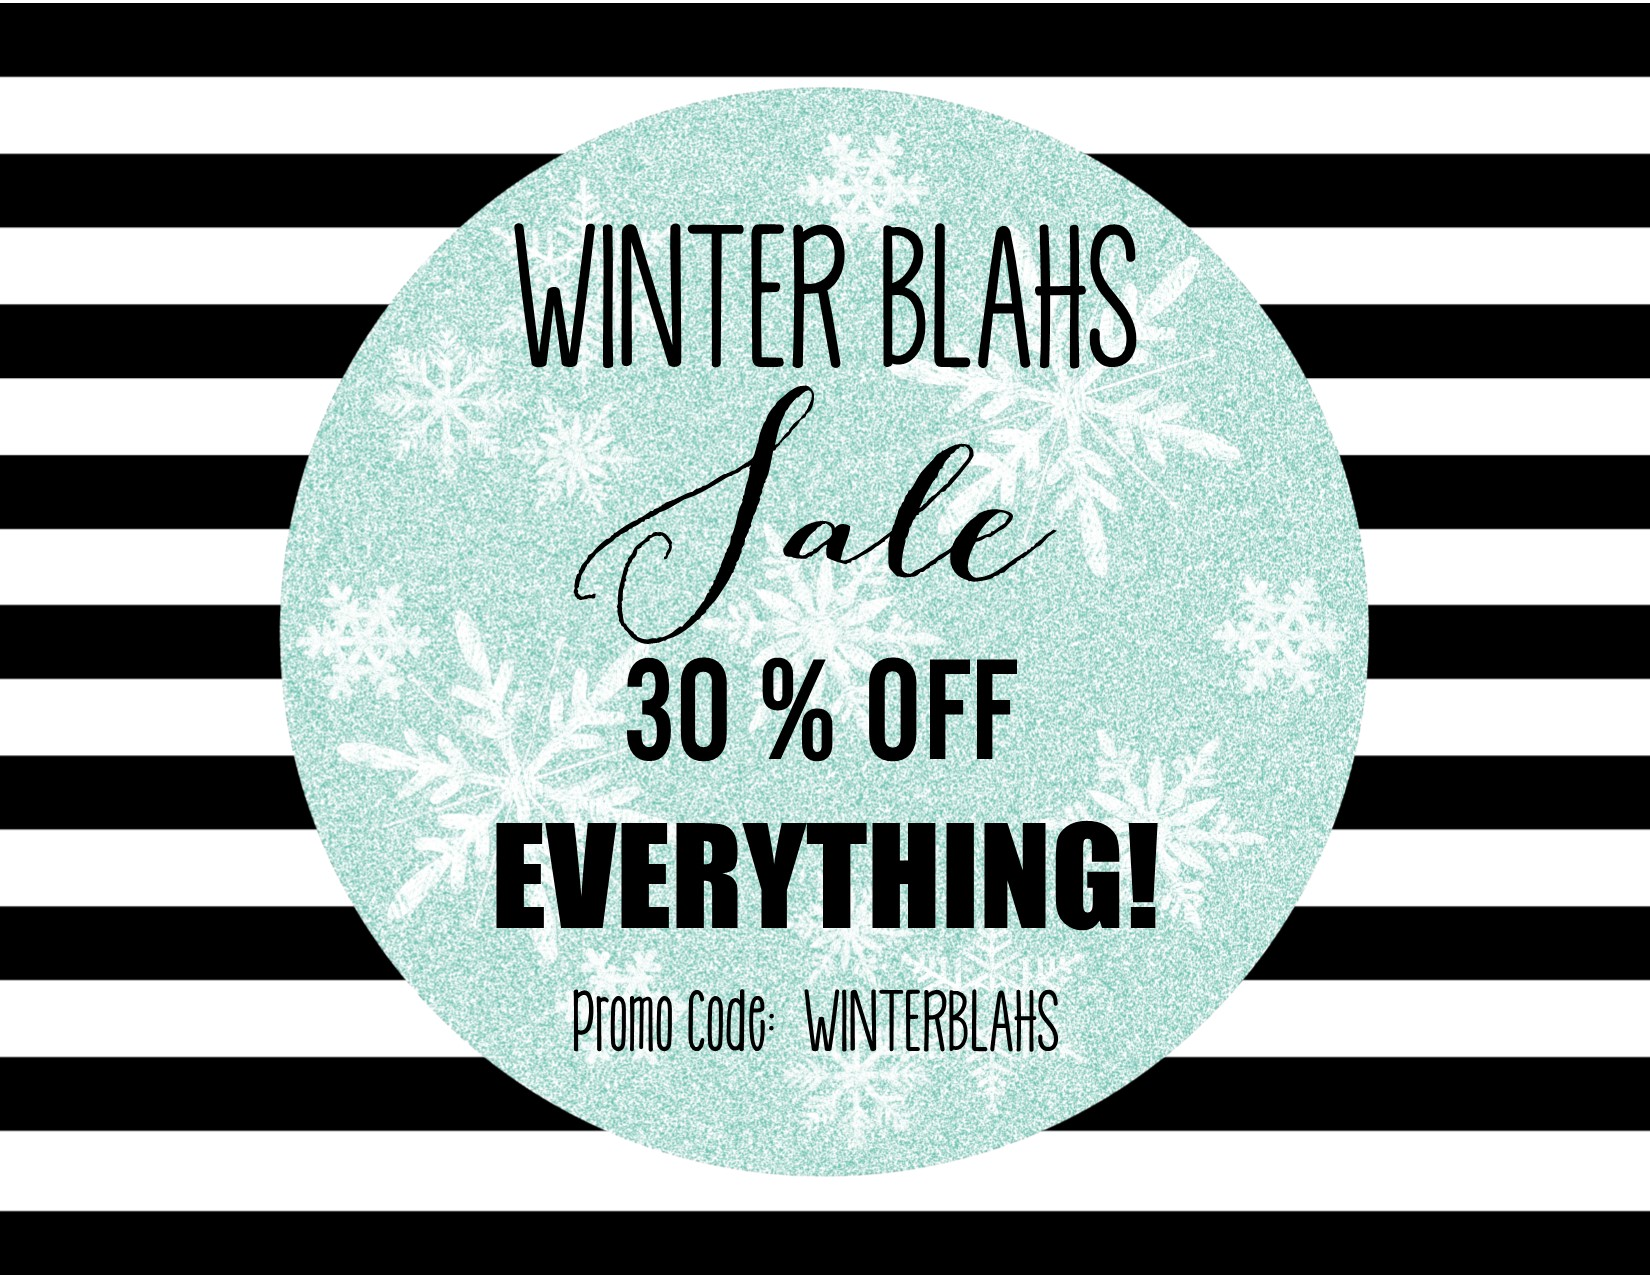 winter blahs sale